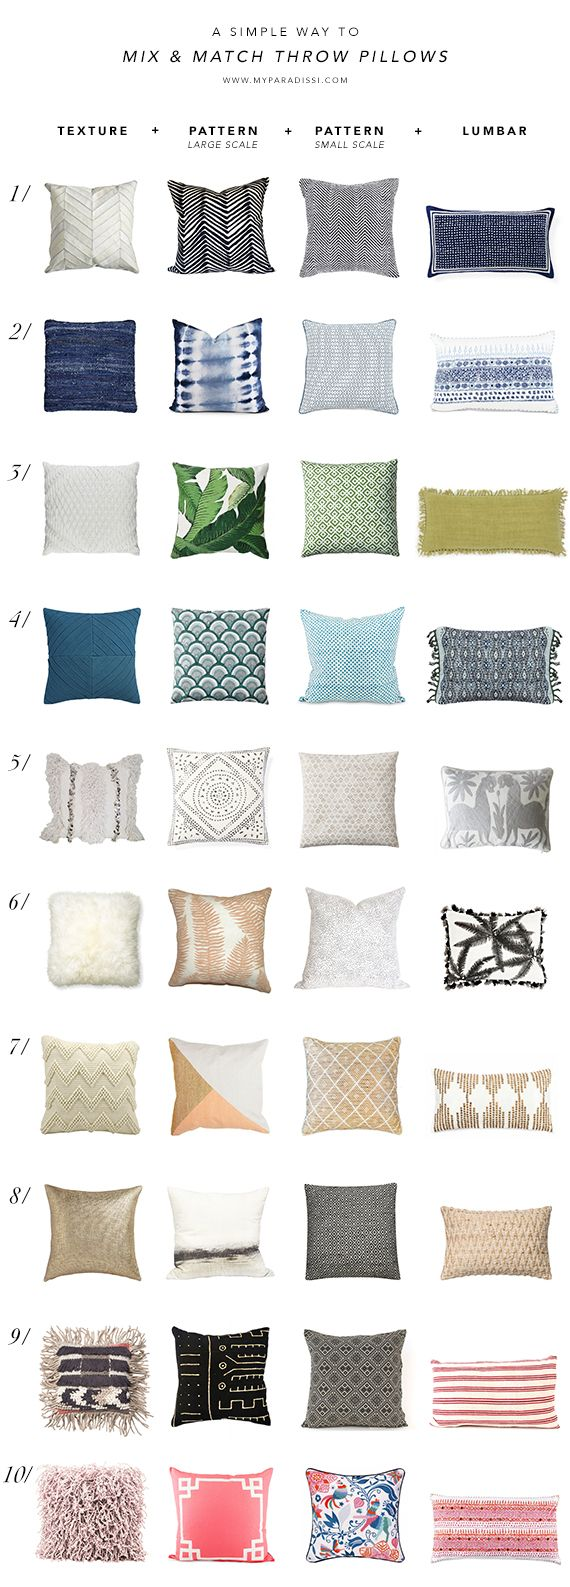 A Simple Way To Mix And Match Throw Pillows Living Room Pillows